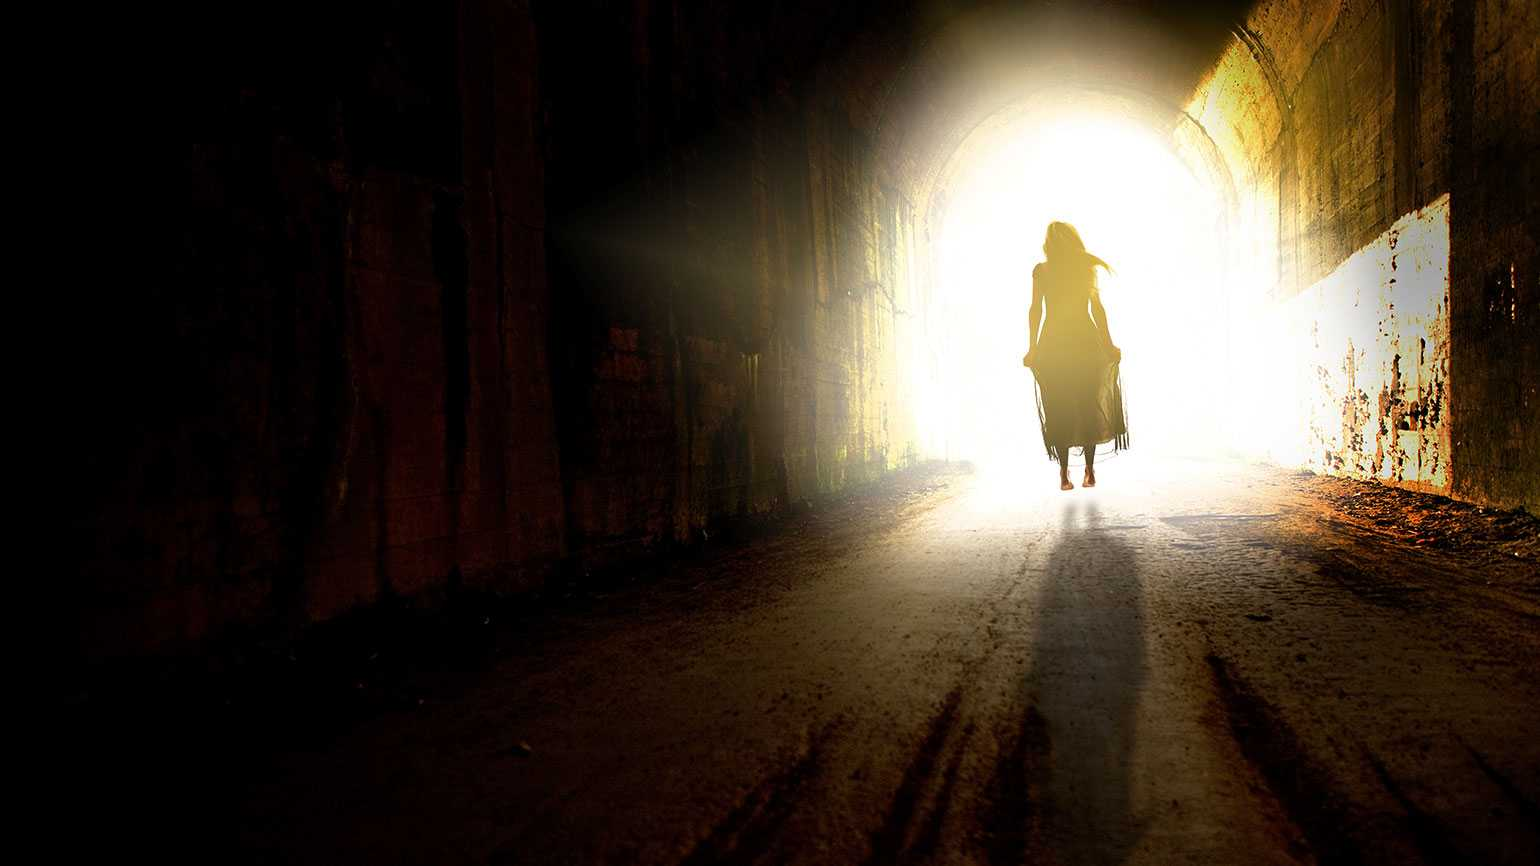 A woman walks down a dark corridor toward a heavenly light